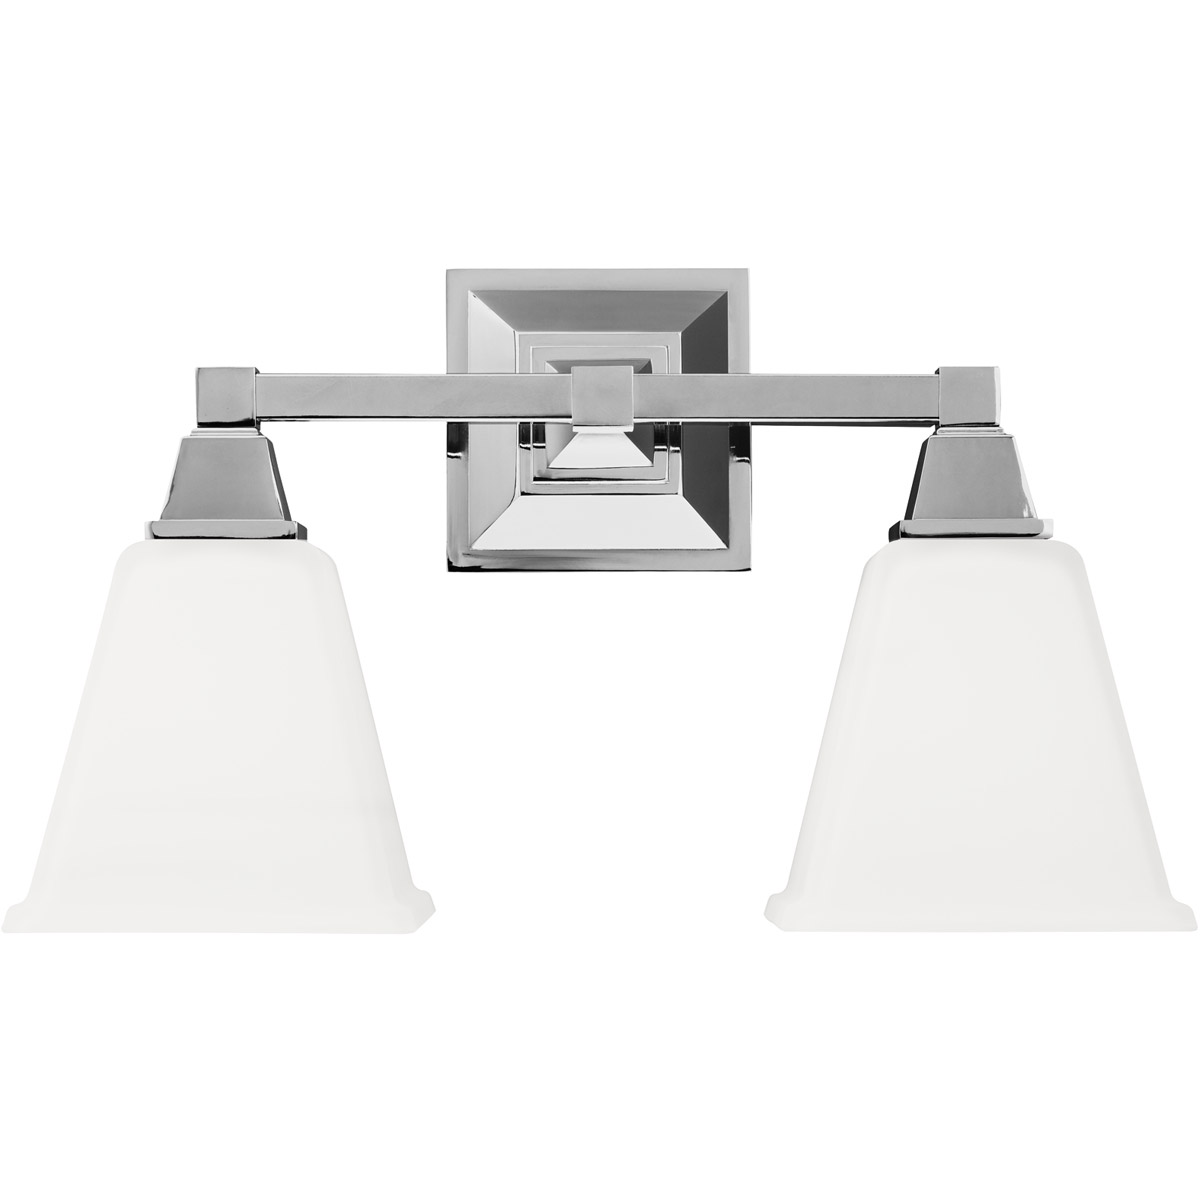 Sea Gull Denhelm 2 Light Bath Vanity in Chrome 4450402-05